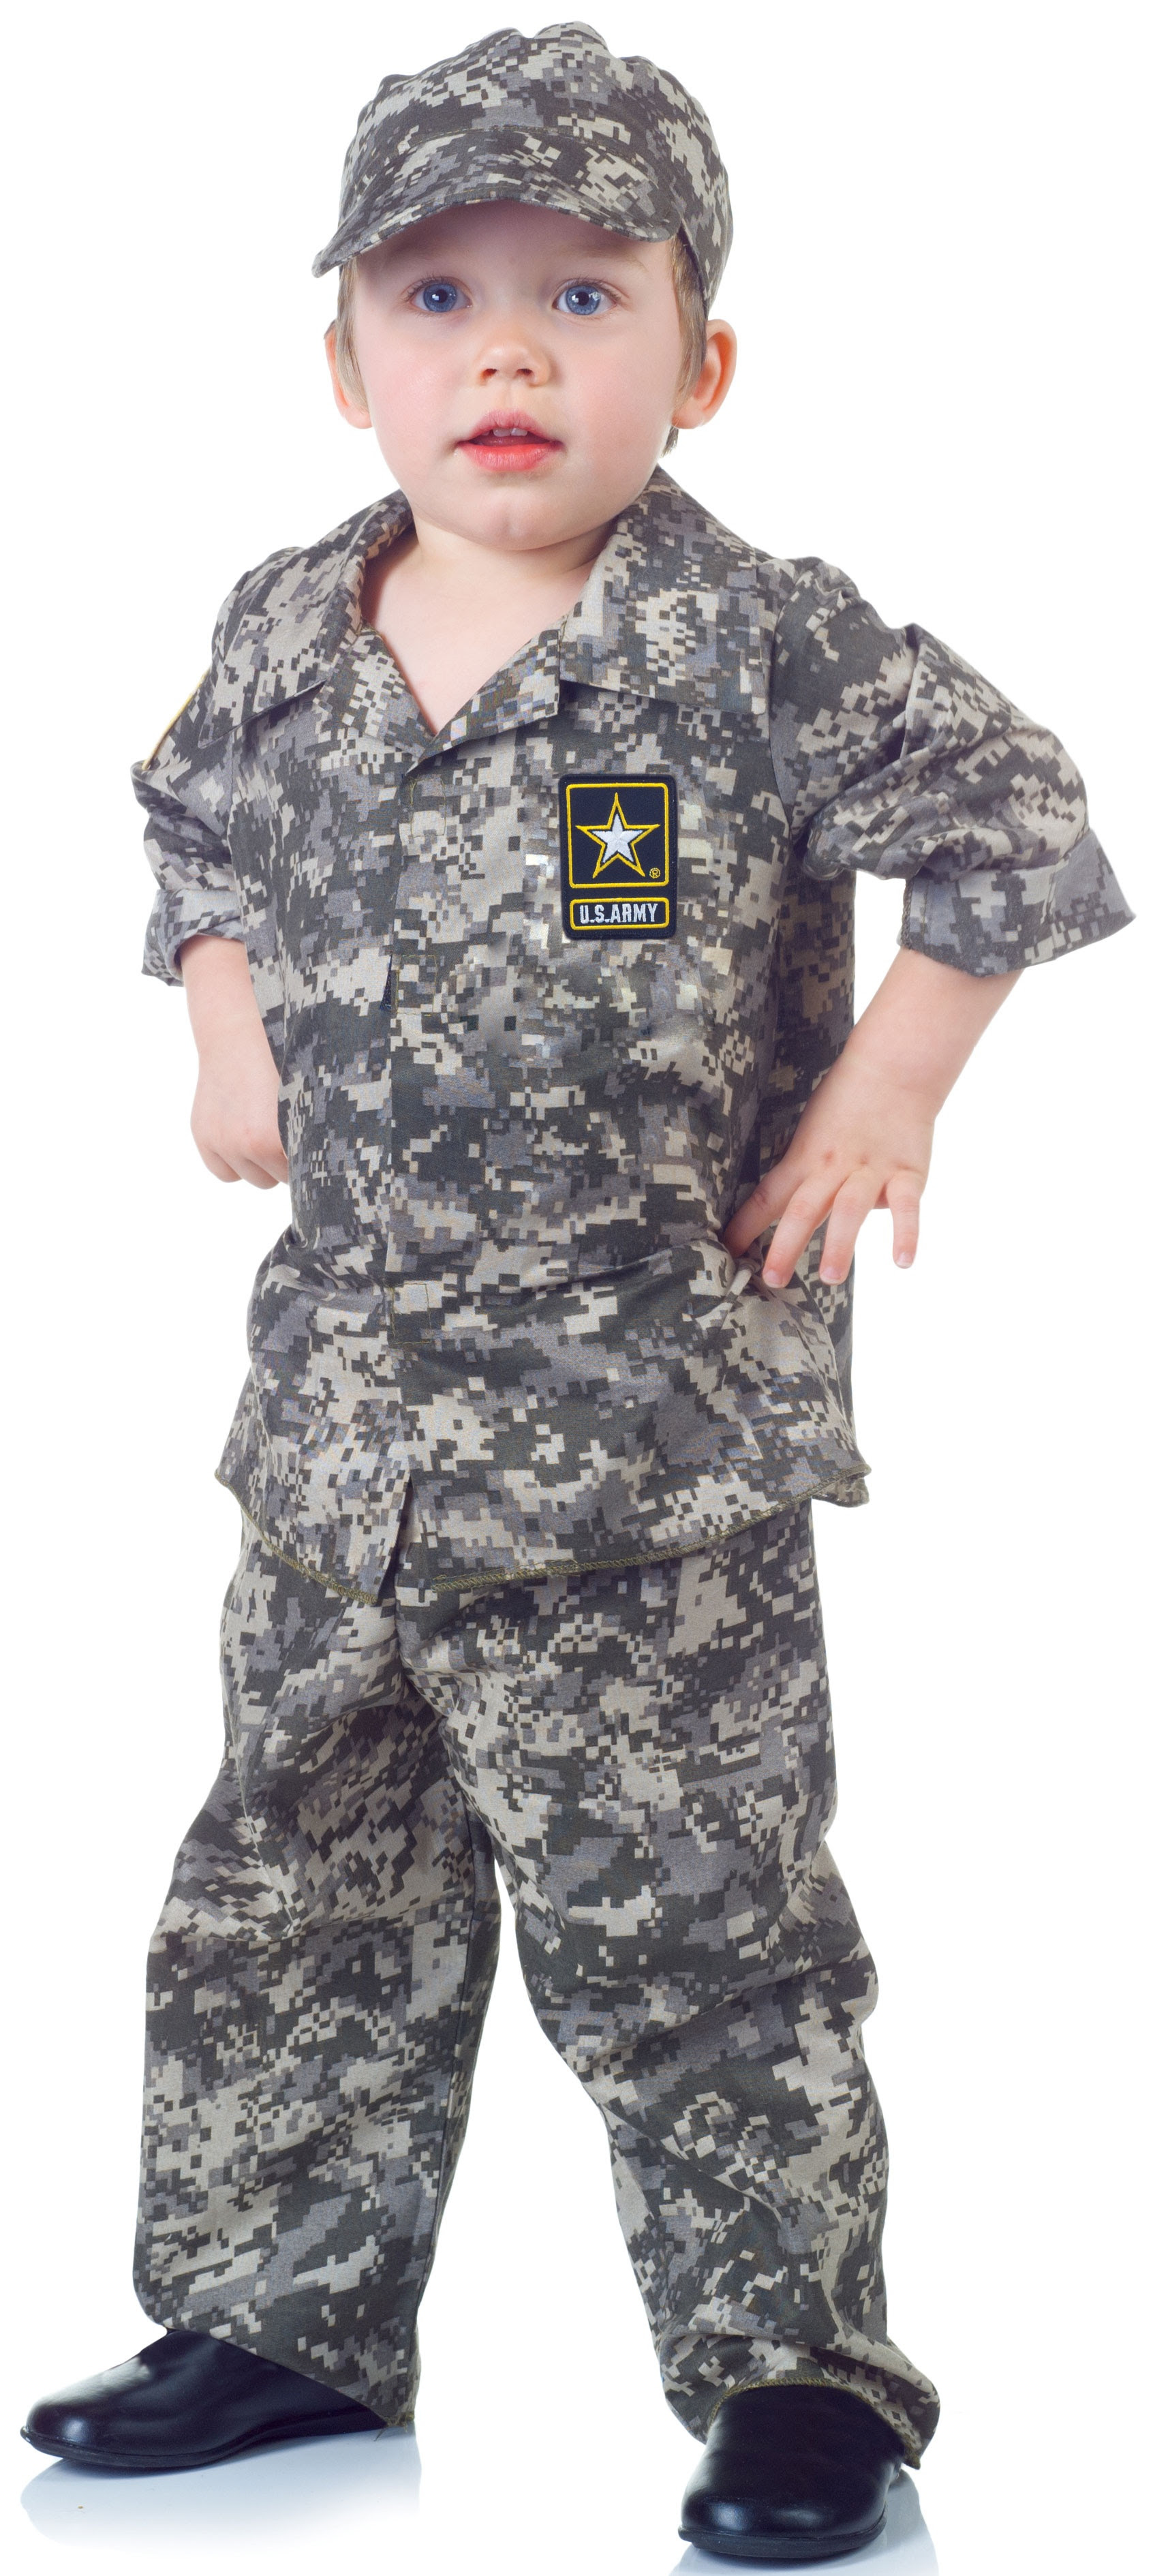 http://www.mrcostumes.com/images/pz/20129/26052_US_Army_Camo_Set_Toddler.jpg